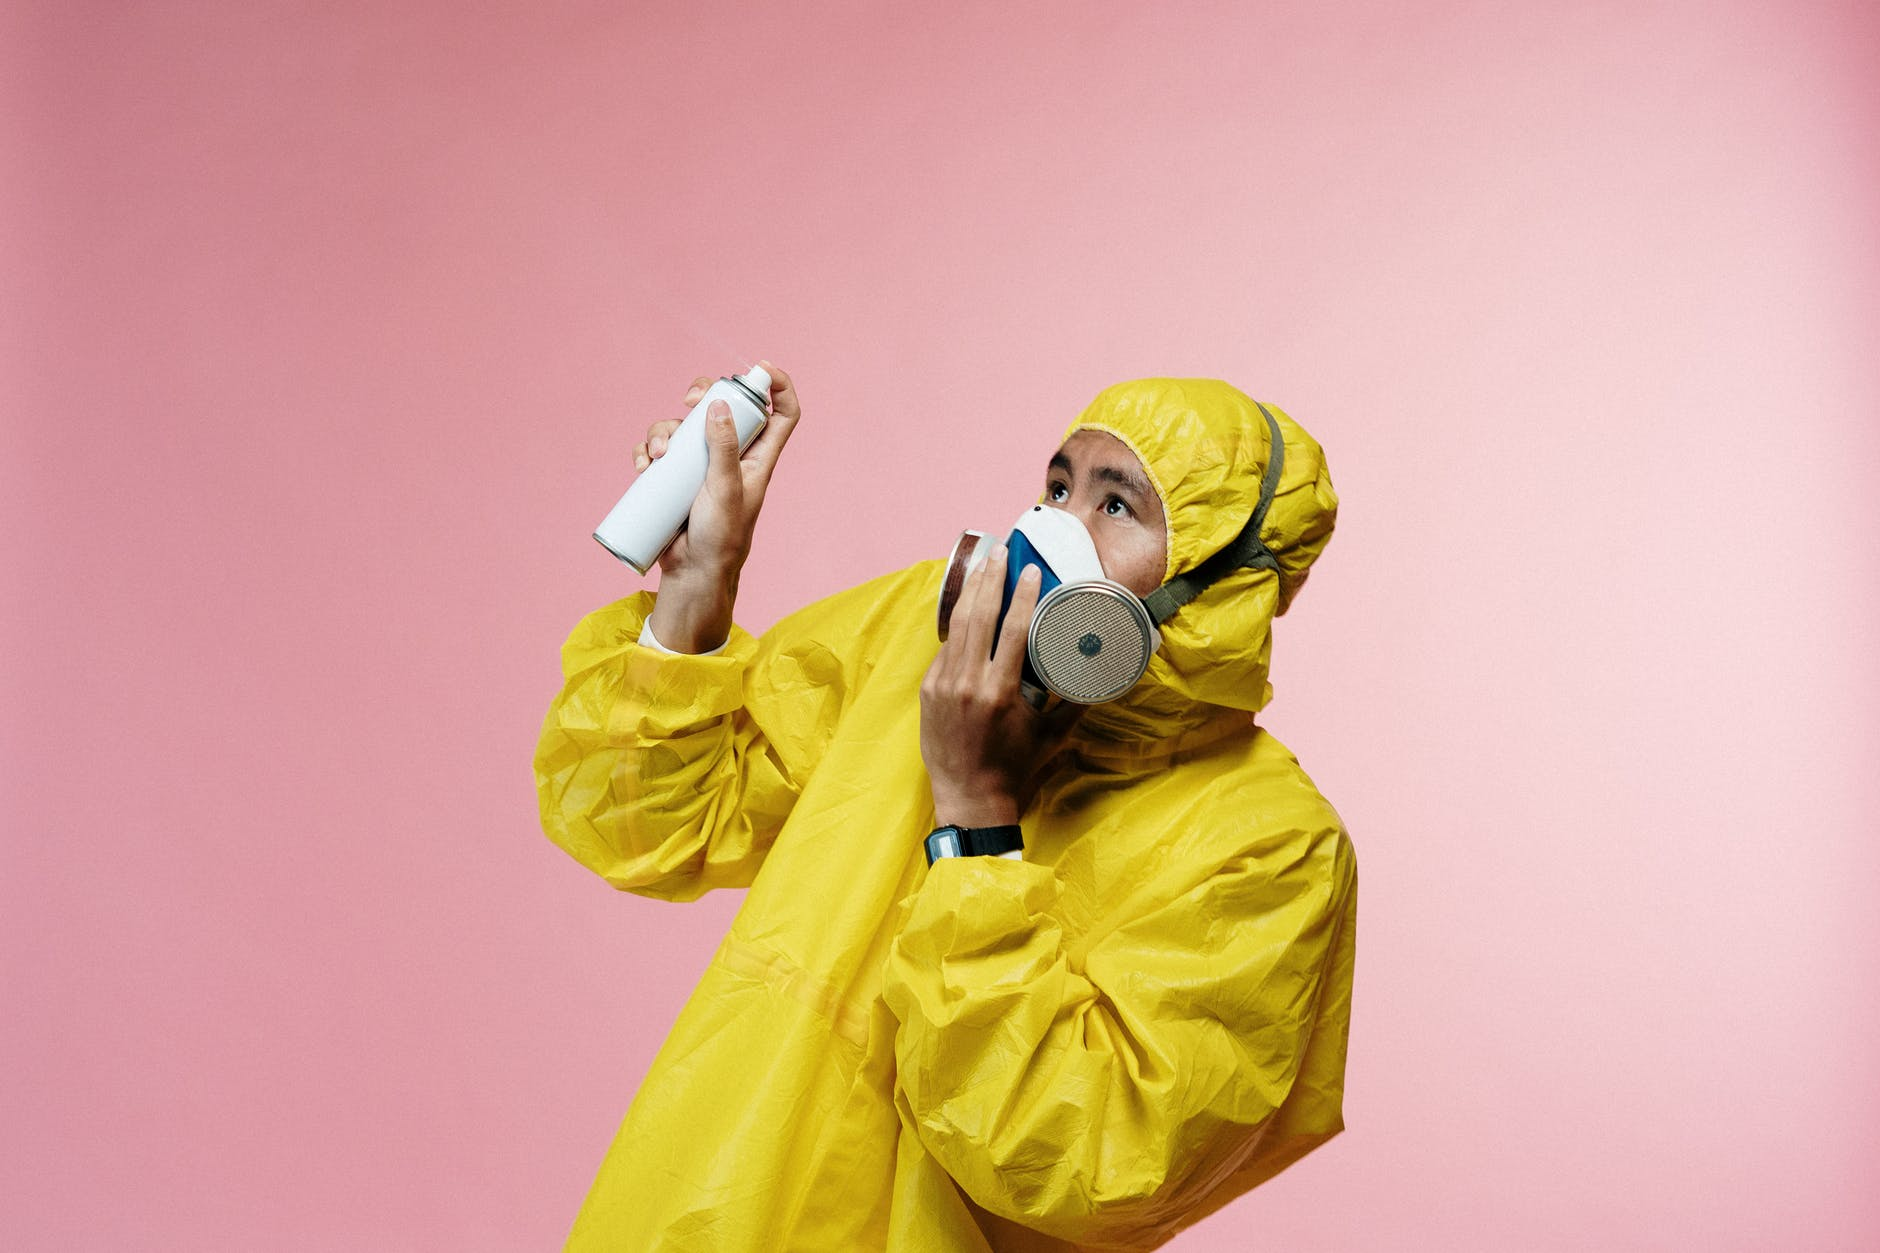 person in coveralls holding spray bottle